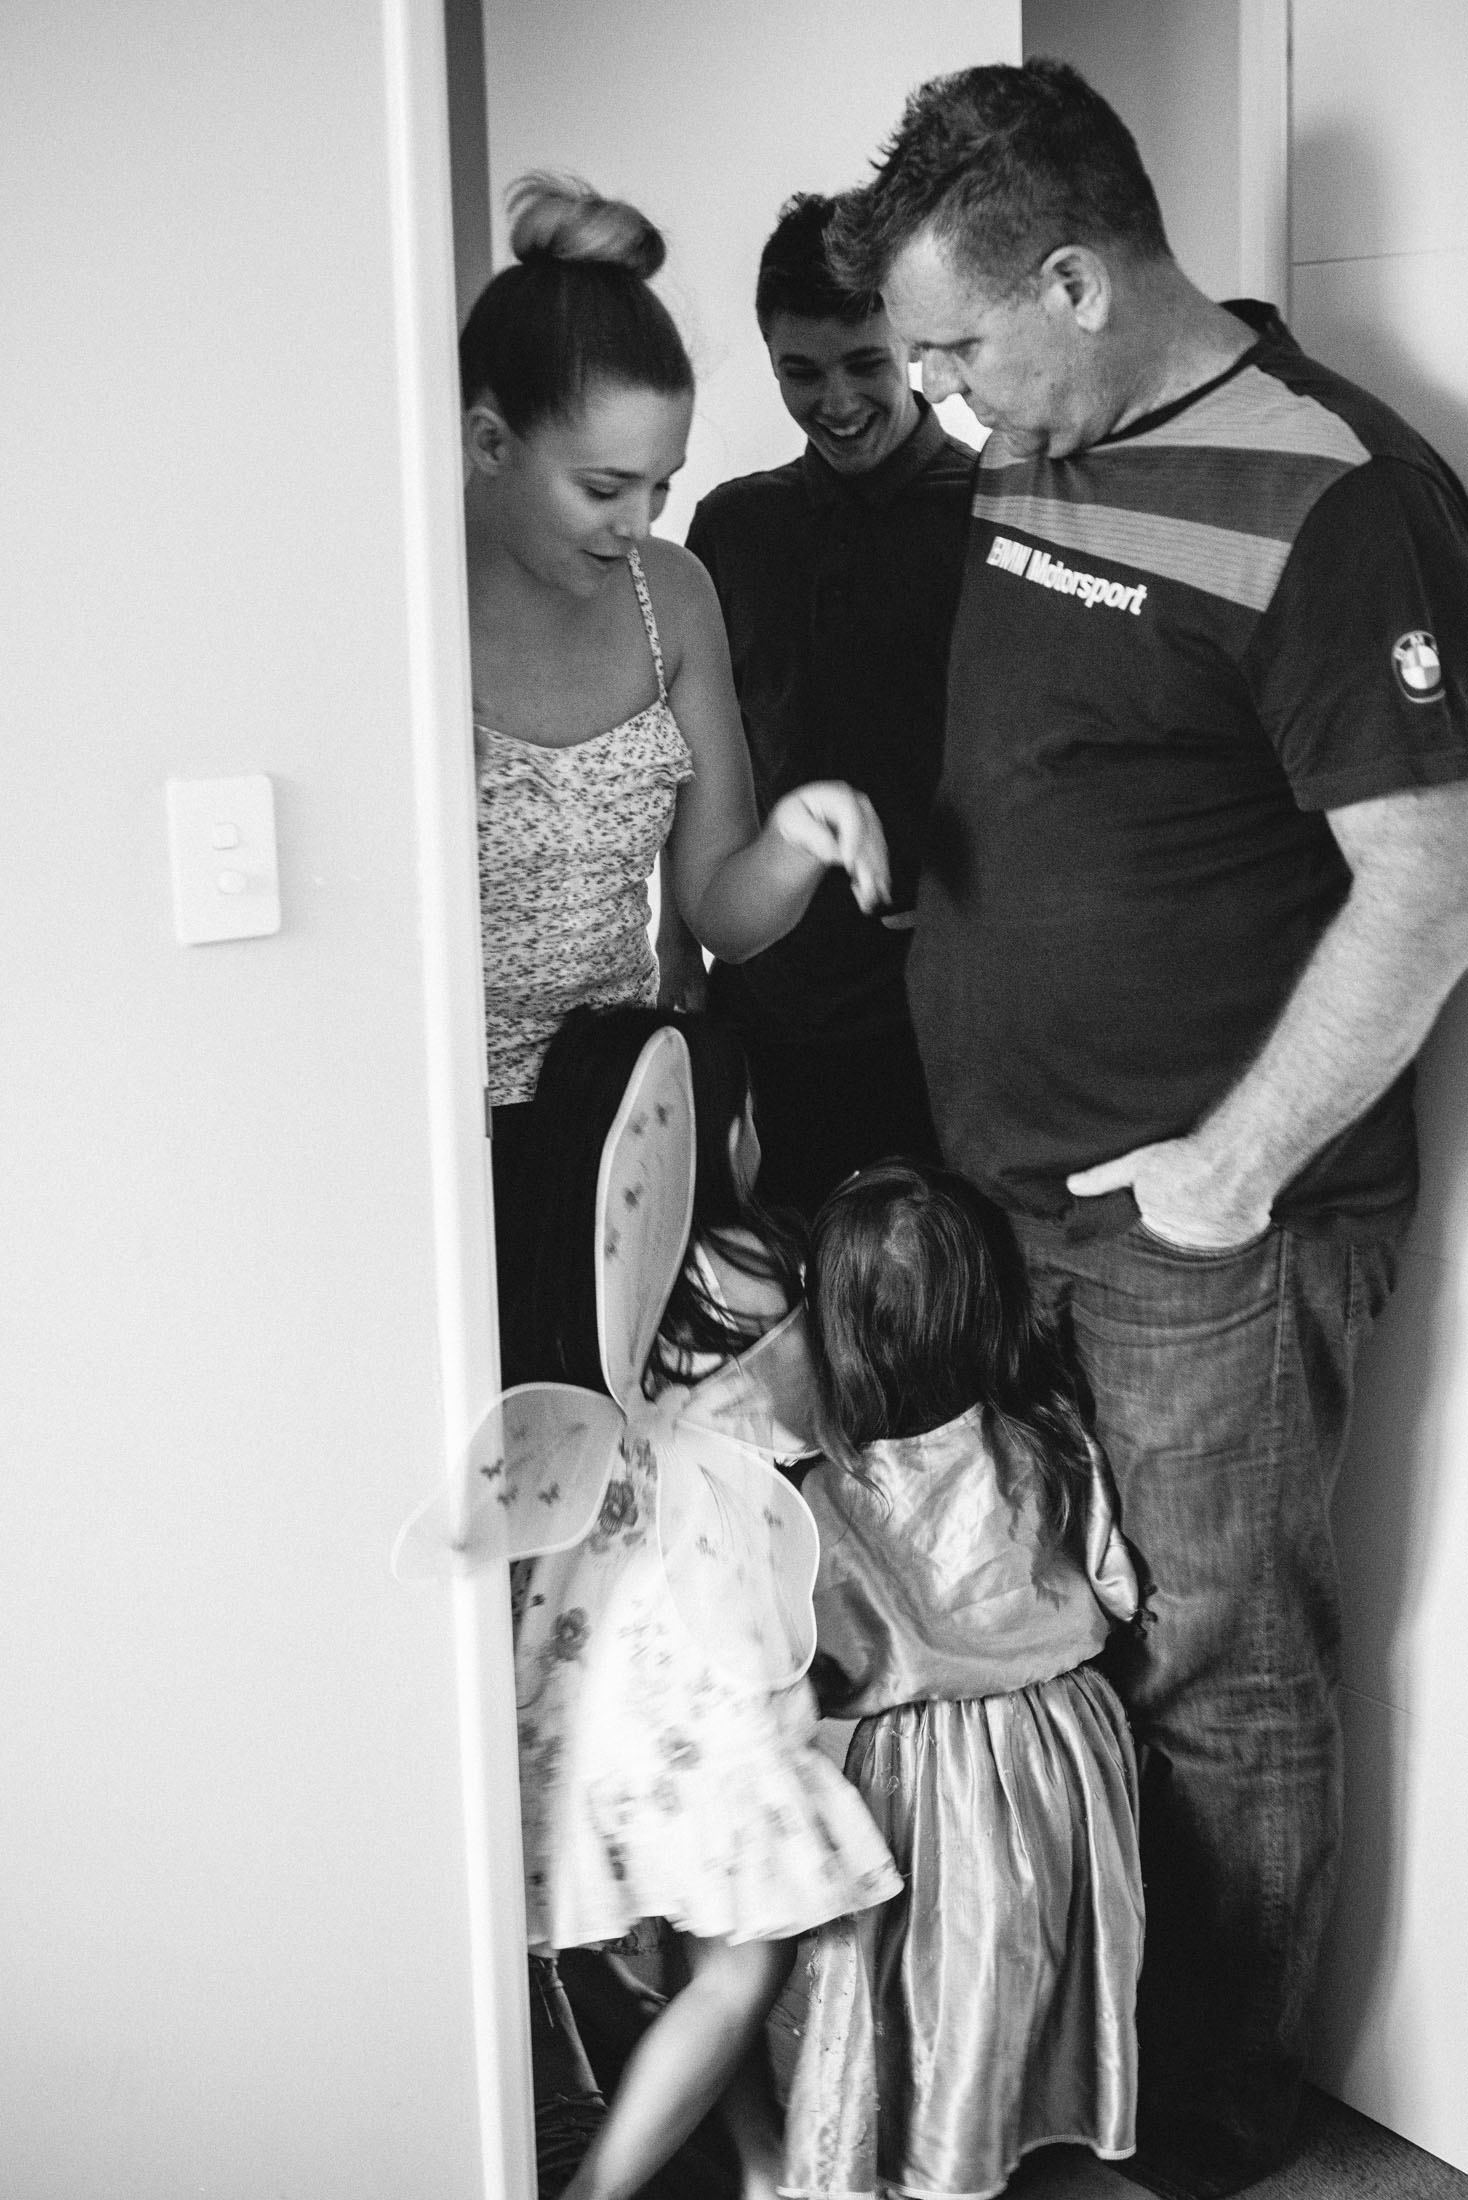 Russo_Family-Photography-unposed16.JPG